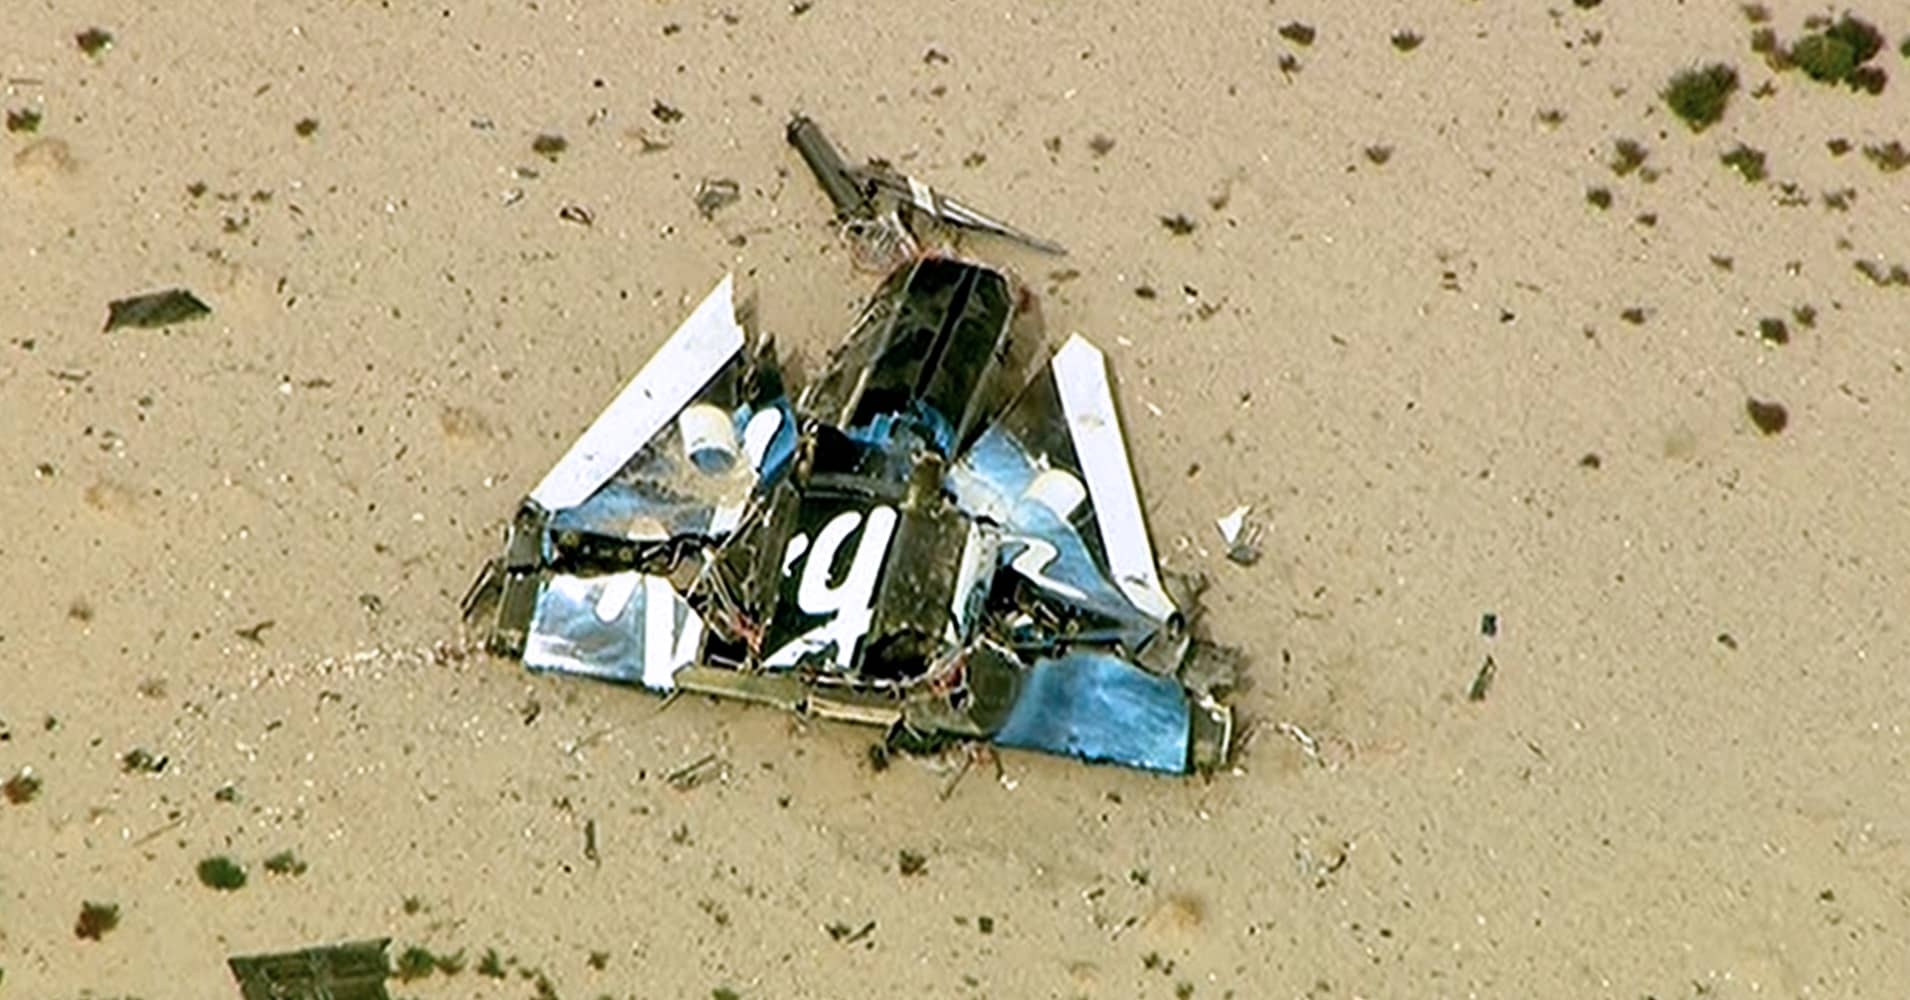 Pilot actions examined in US crash of Virgin Galactic ...